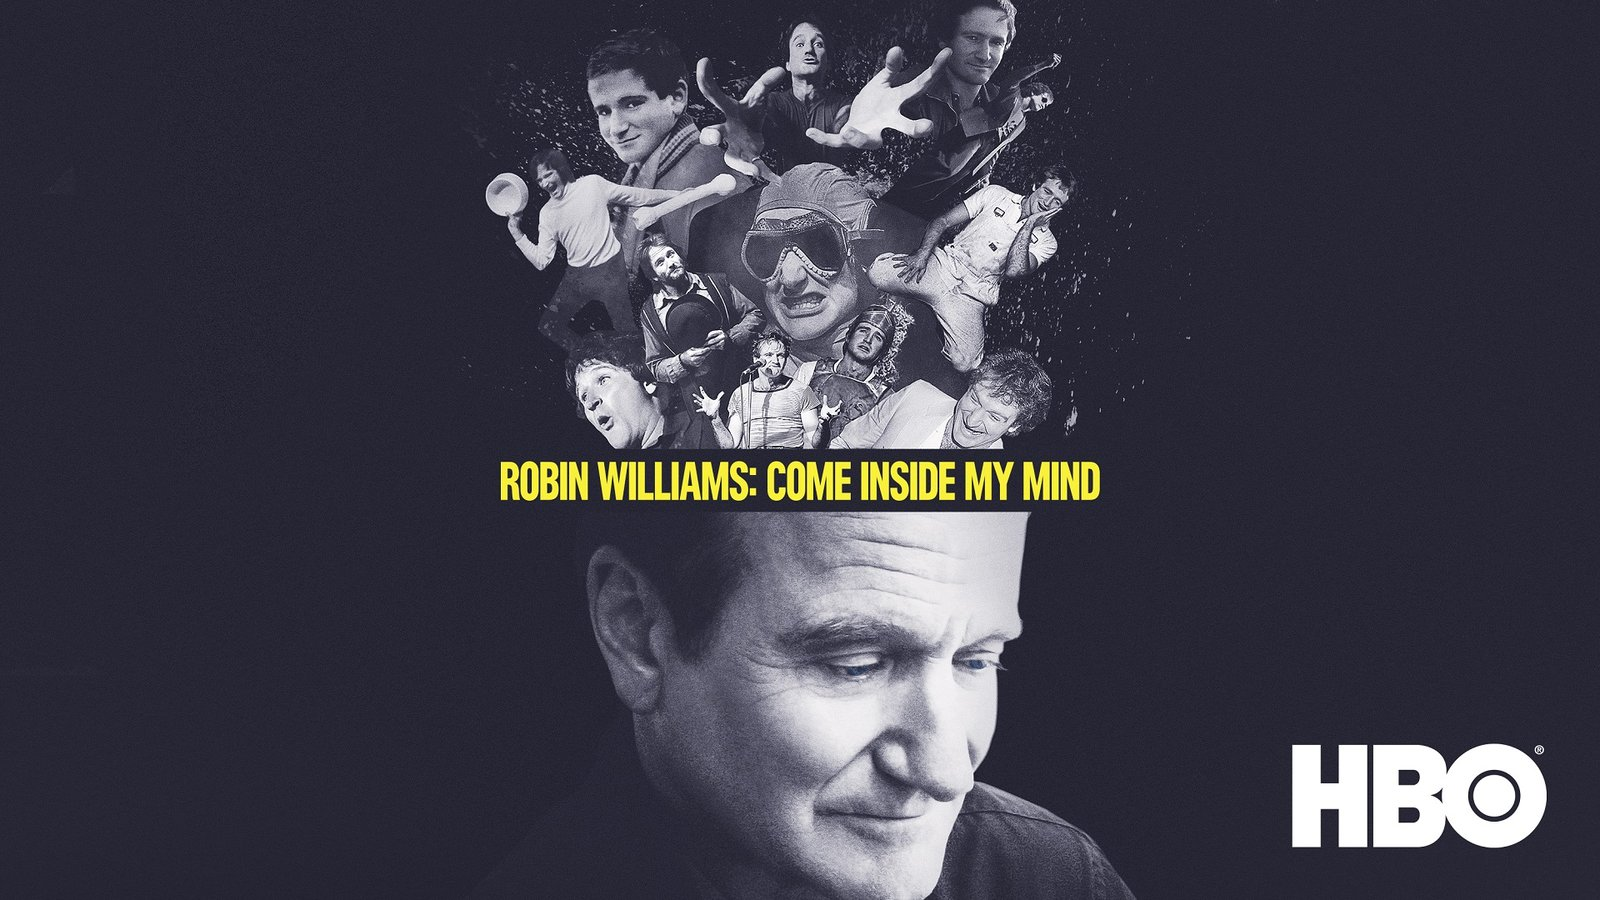 Robin Williams: Come Inside My Mind - The World's Most Beloved and Inventive Actor/Comedian